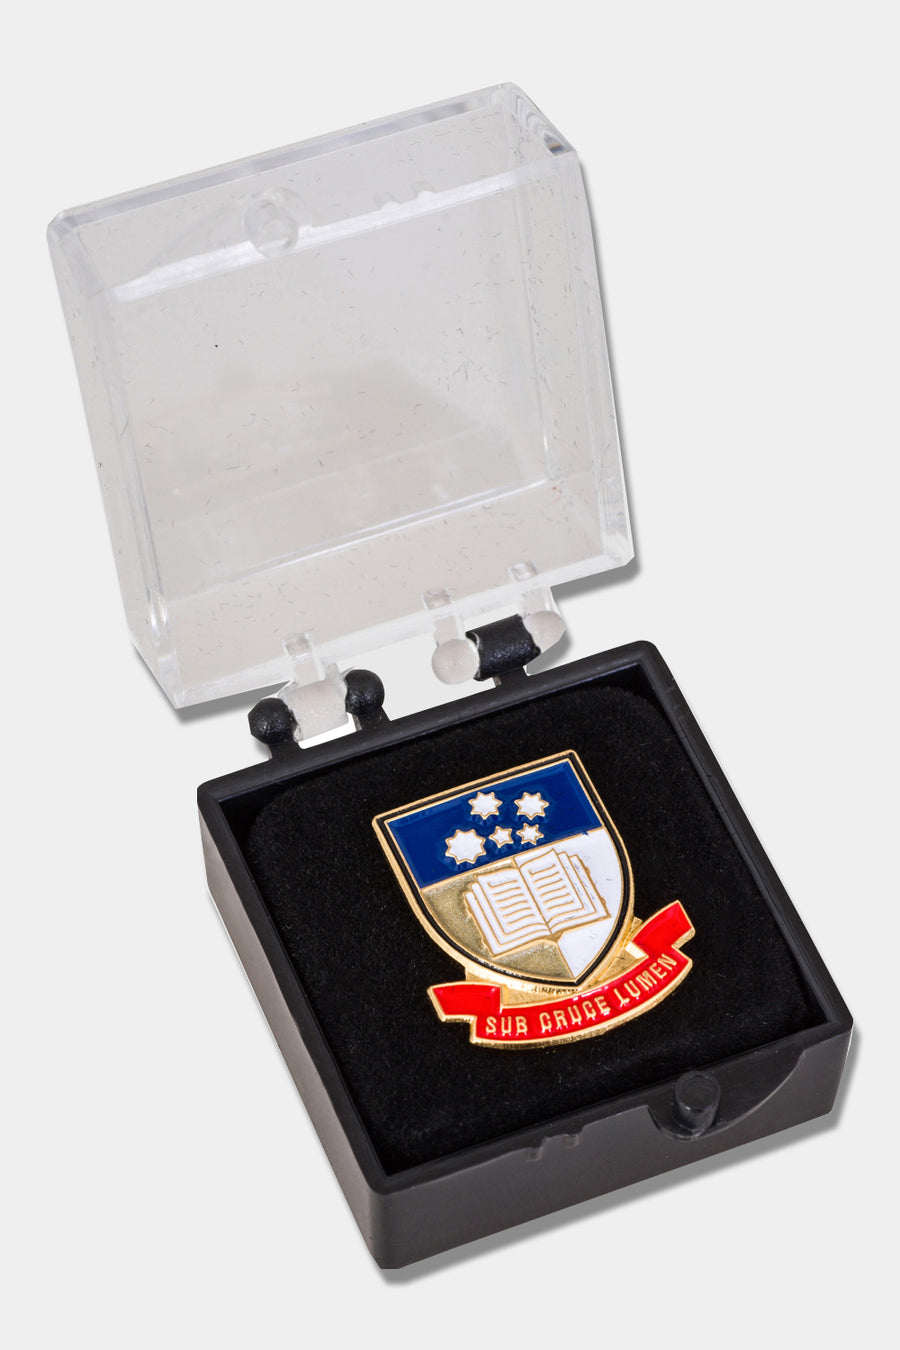 University Lapel Pin - The Adelaide Store